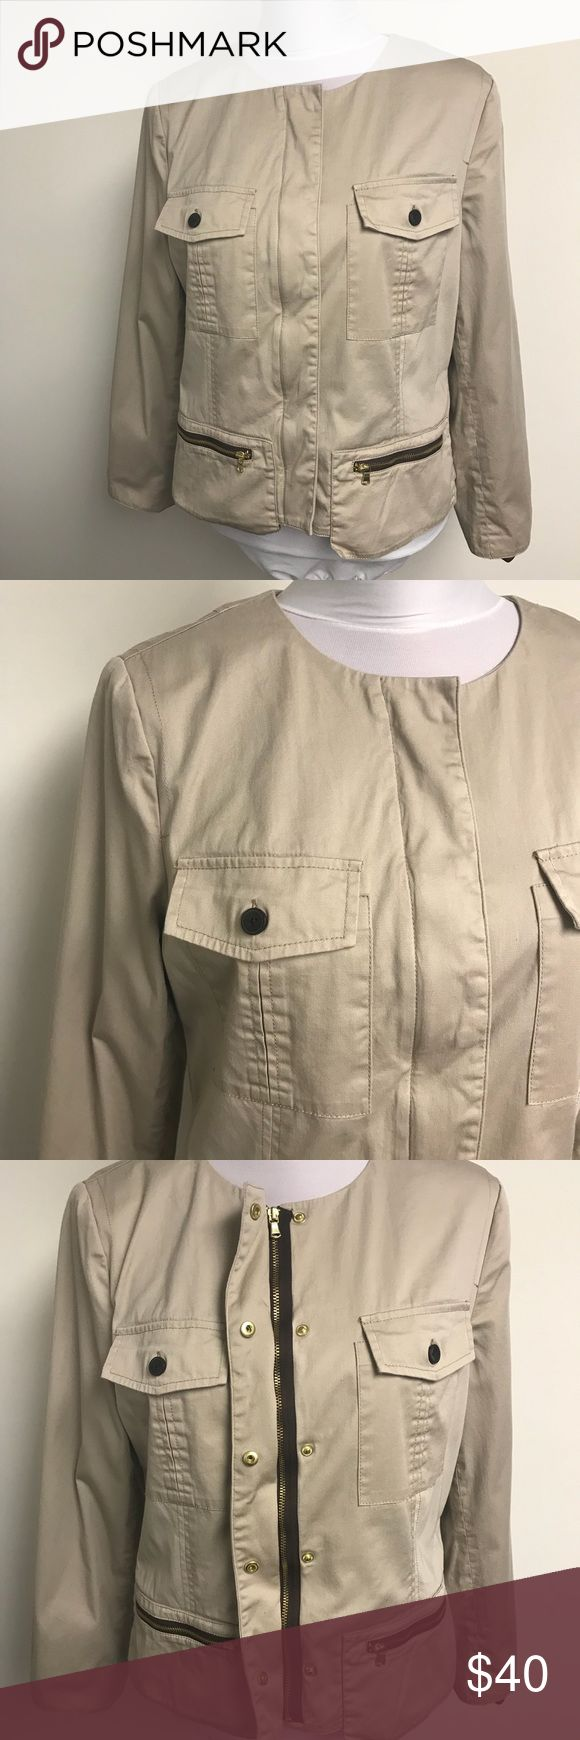 """CHICO'S Khaki Beige Casual Zip Up Cotton Jacket Collarless khaki beige casual jacket by Chico's. Chico's size 1 / US women's size medium.   Zip front with snap-close flap. Two front flap pockets and two zippered pockets. Polyester animal print lining.  Very good, gently worn condition.  Measurements Pit to Pit: 19"""" Sleeve (under): 16"""" Length (shoulder to hem): 22.5""""  Material: 98% cotton, 2% spandex.   Wash/care instructions: Machine wash cold Chico's Jackets & Coats"""